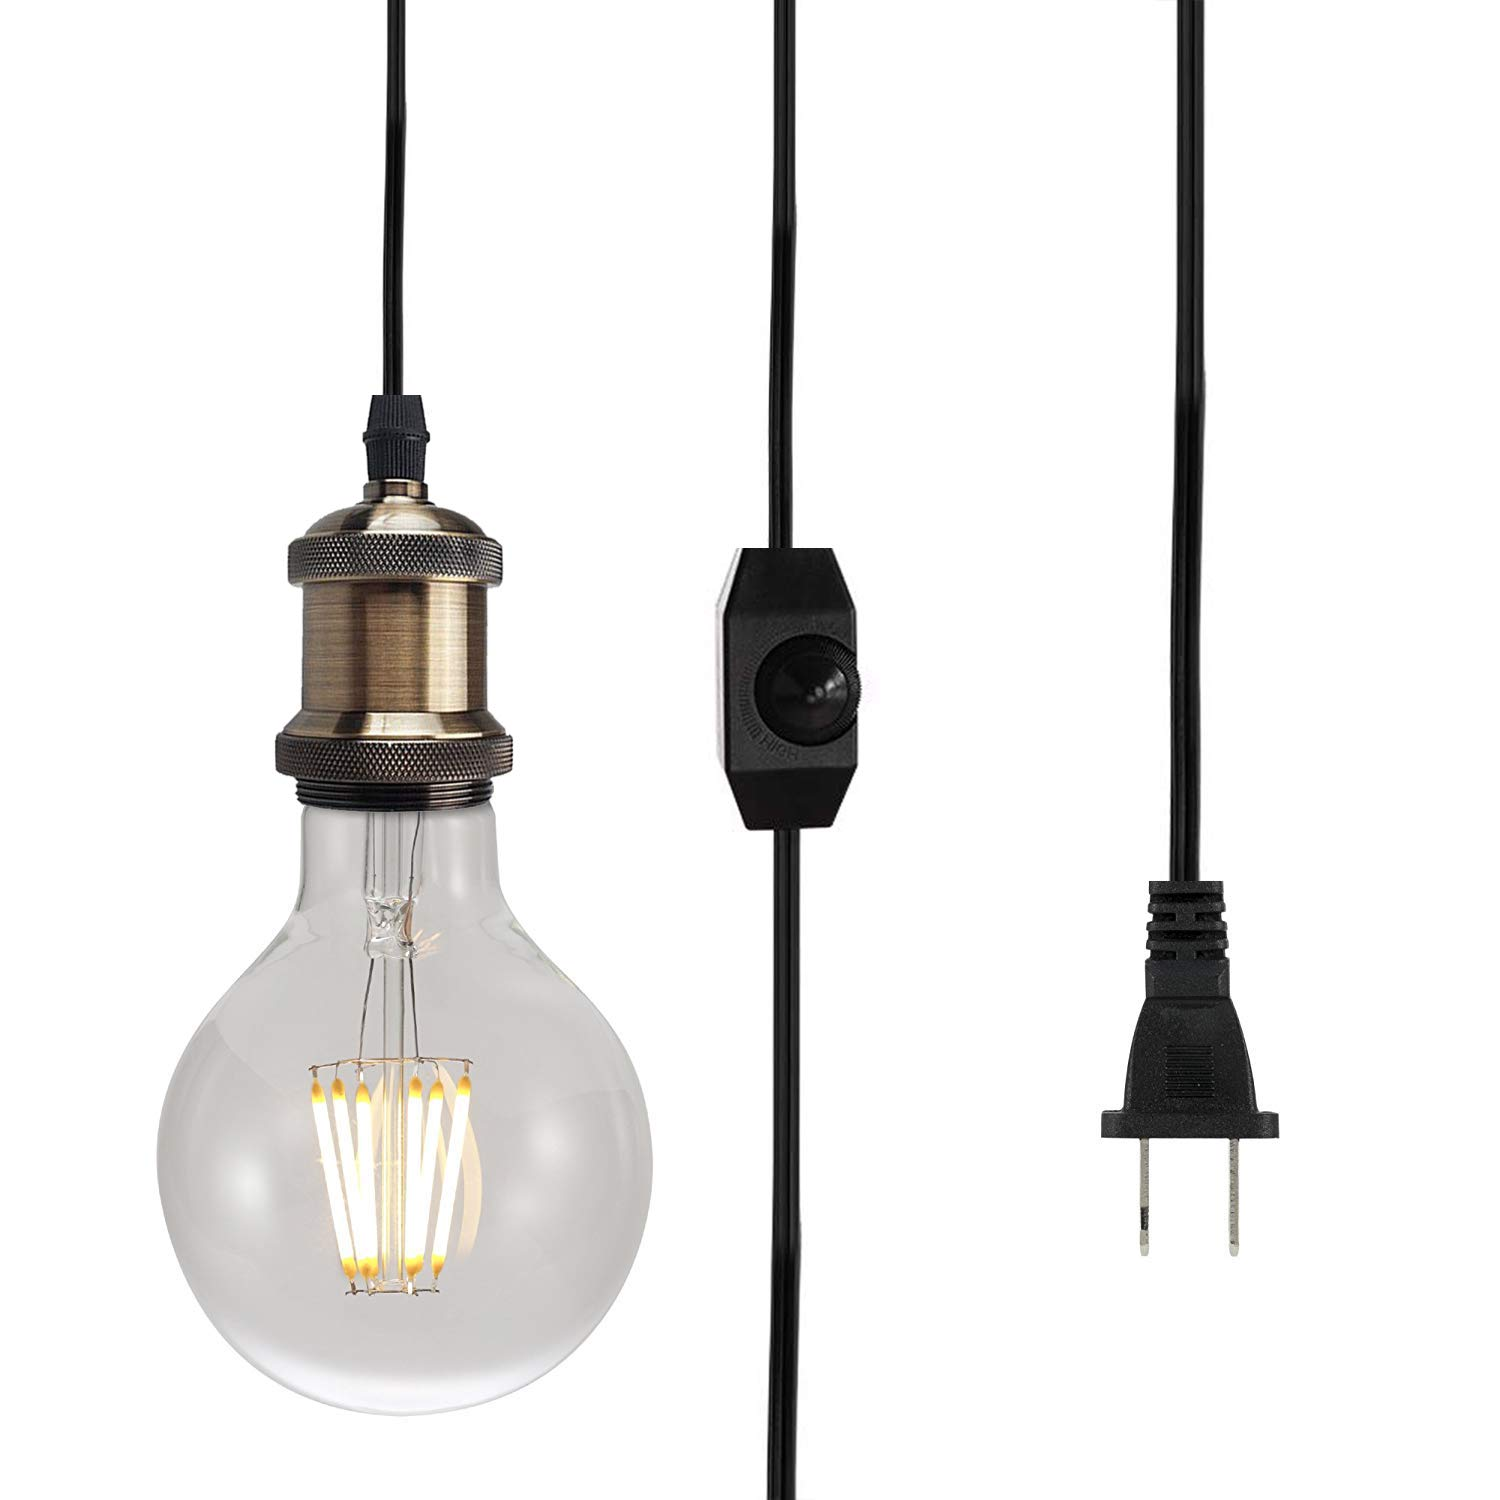 Plug in Pendant Lighting Vintage Edison E26 Industrial Hanging Light Fixture Cord with ON/Off Dimmer Switch 10 ft Handing Cord, 2-Prong US AC Power Plugs, UL Listed Lamp Sockets (No Bulb Included)